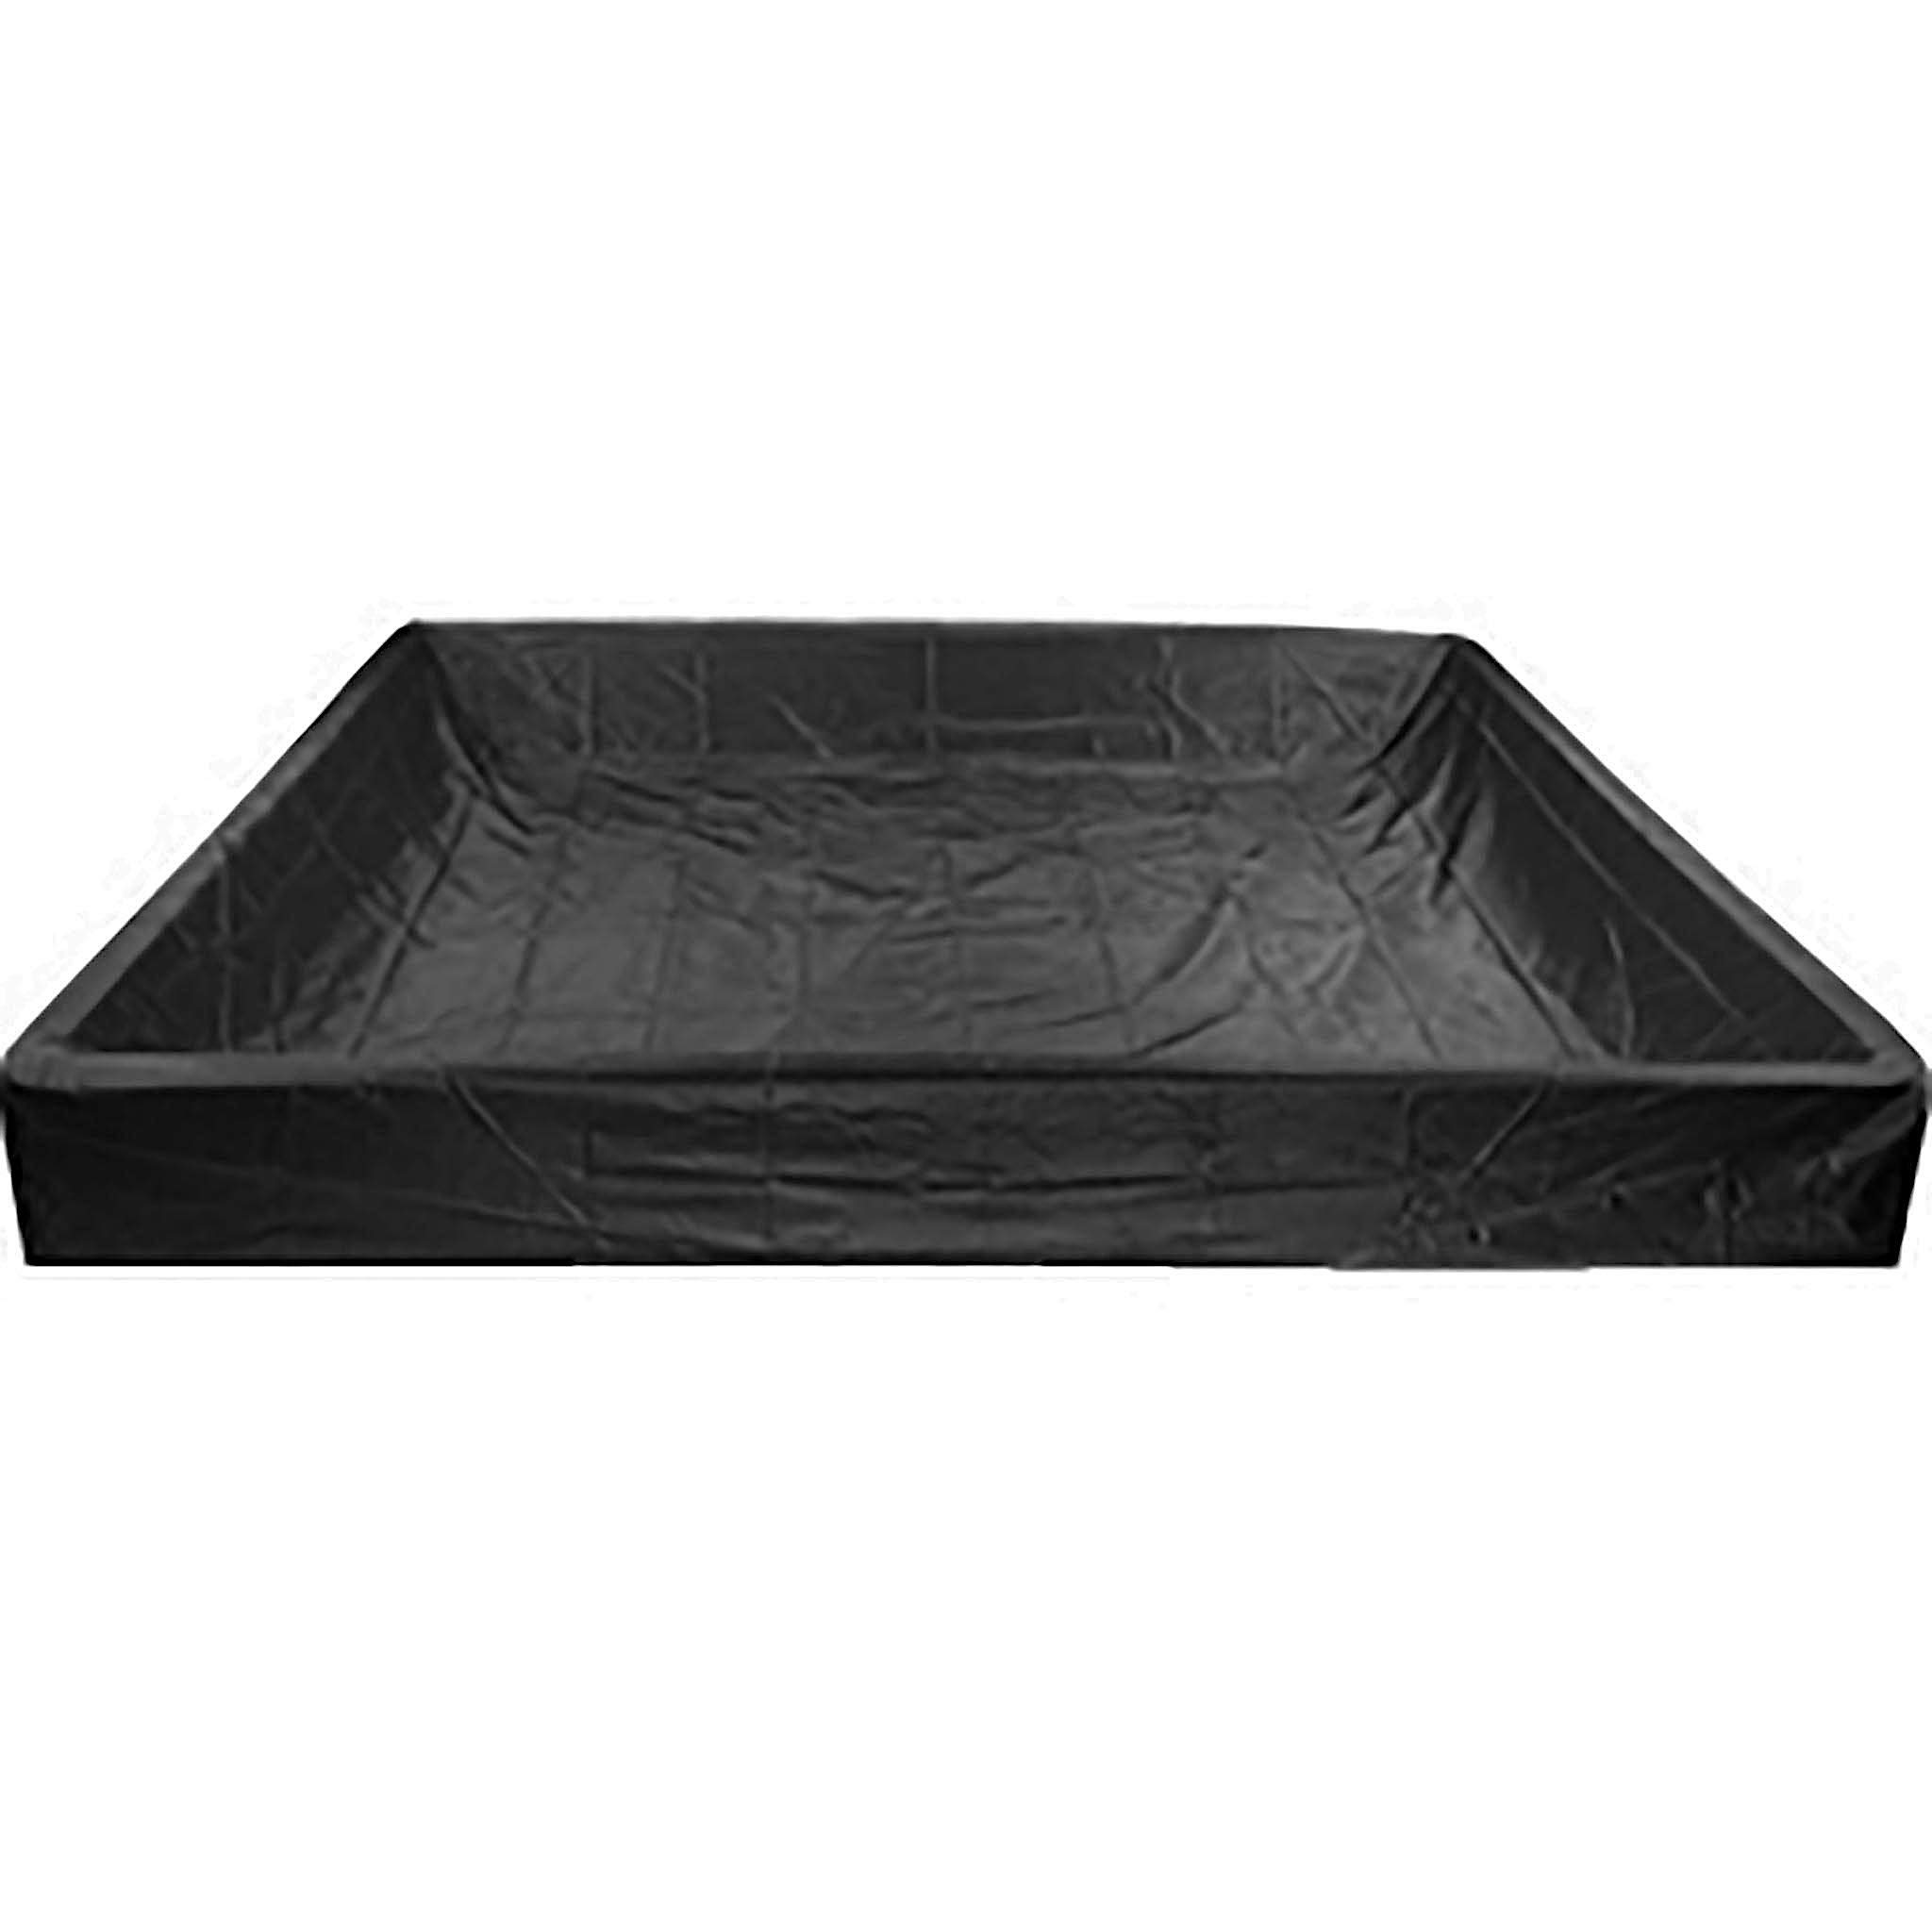 Stand Up Safety Liner, Deep Fill (9â€) for Hardside Waterbeds California King 72in x 84in by Sterling Sleep System